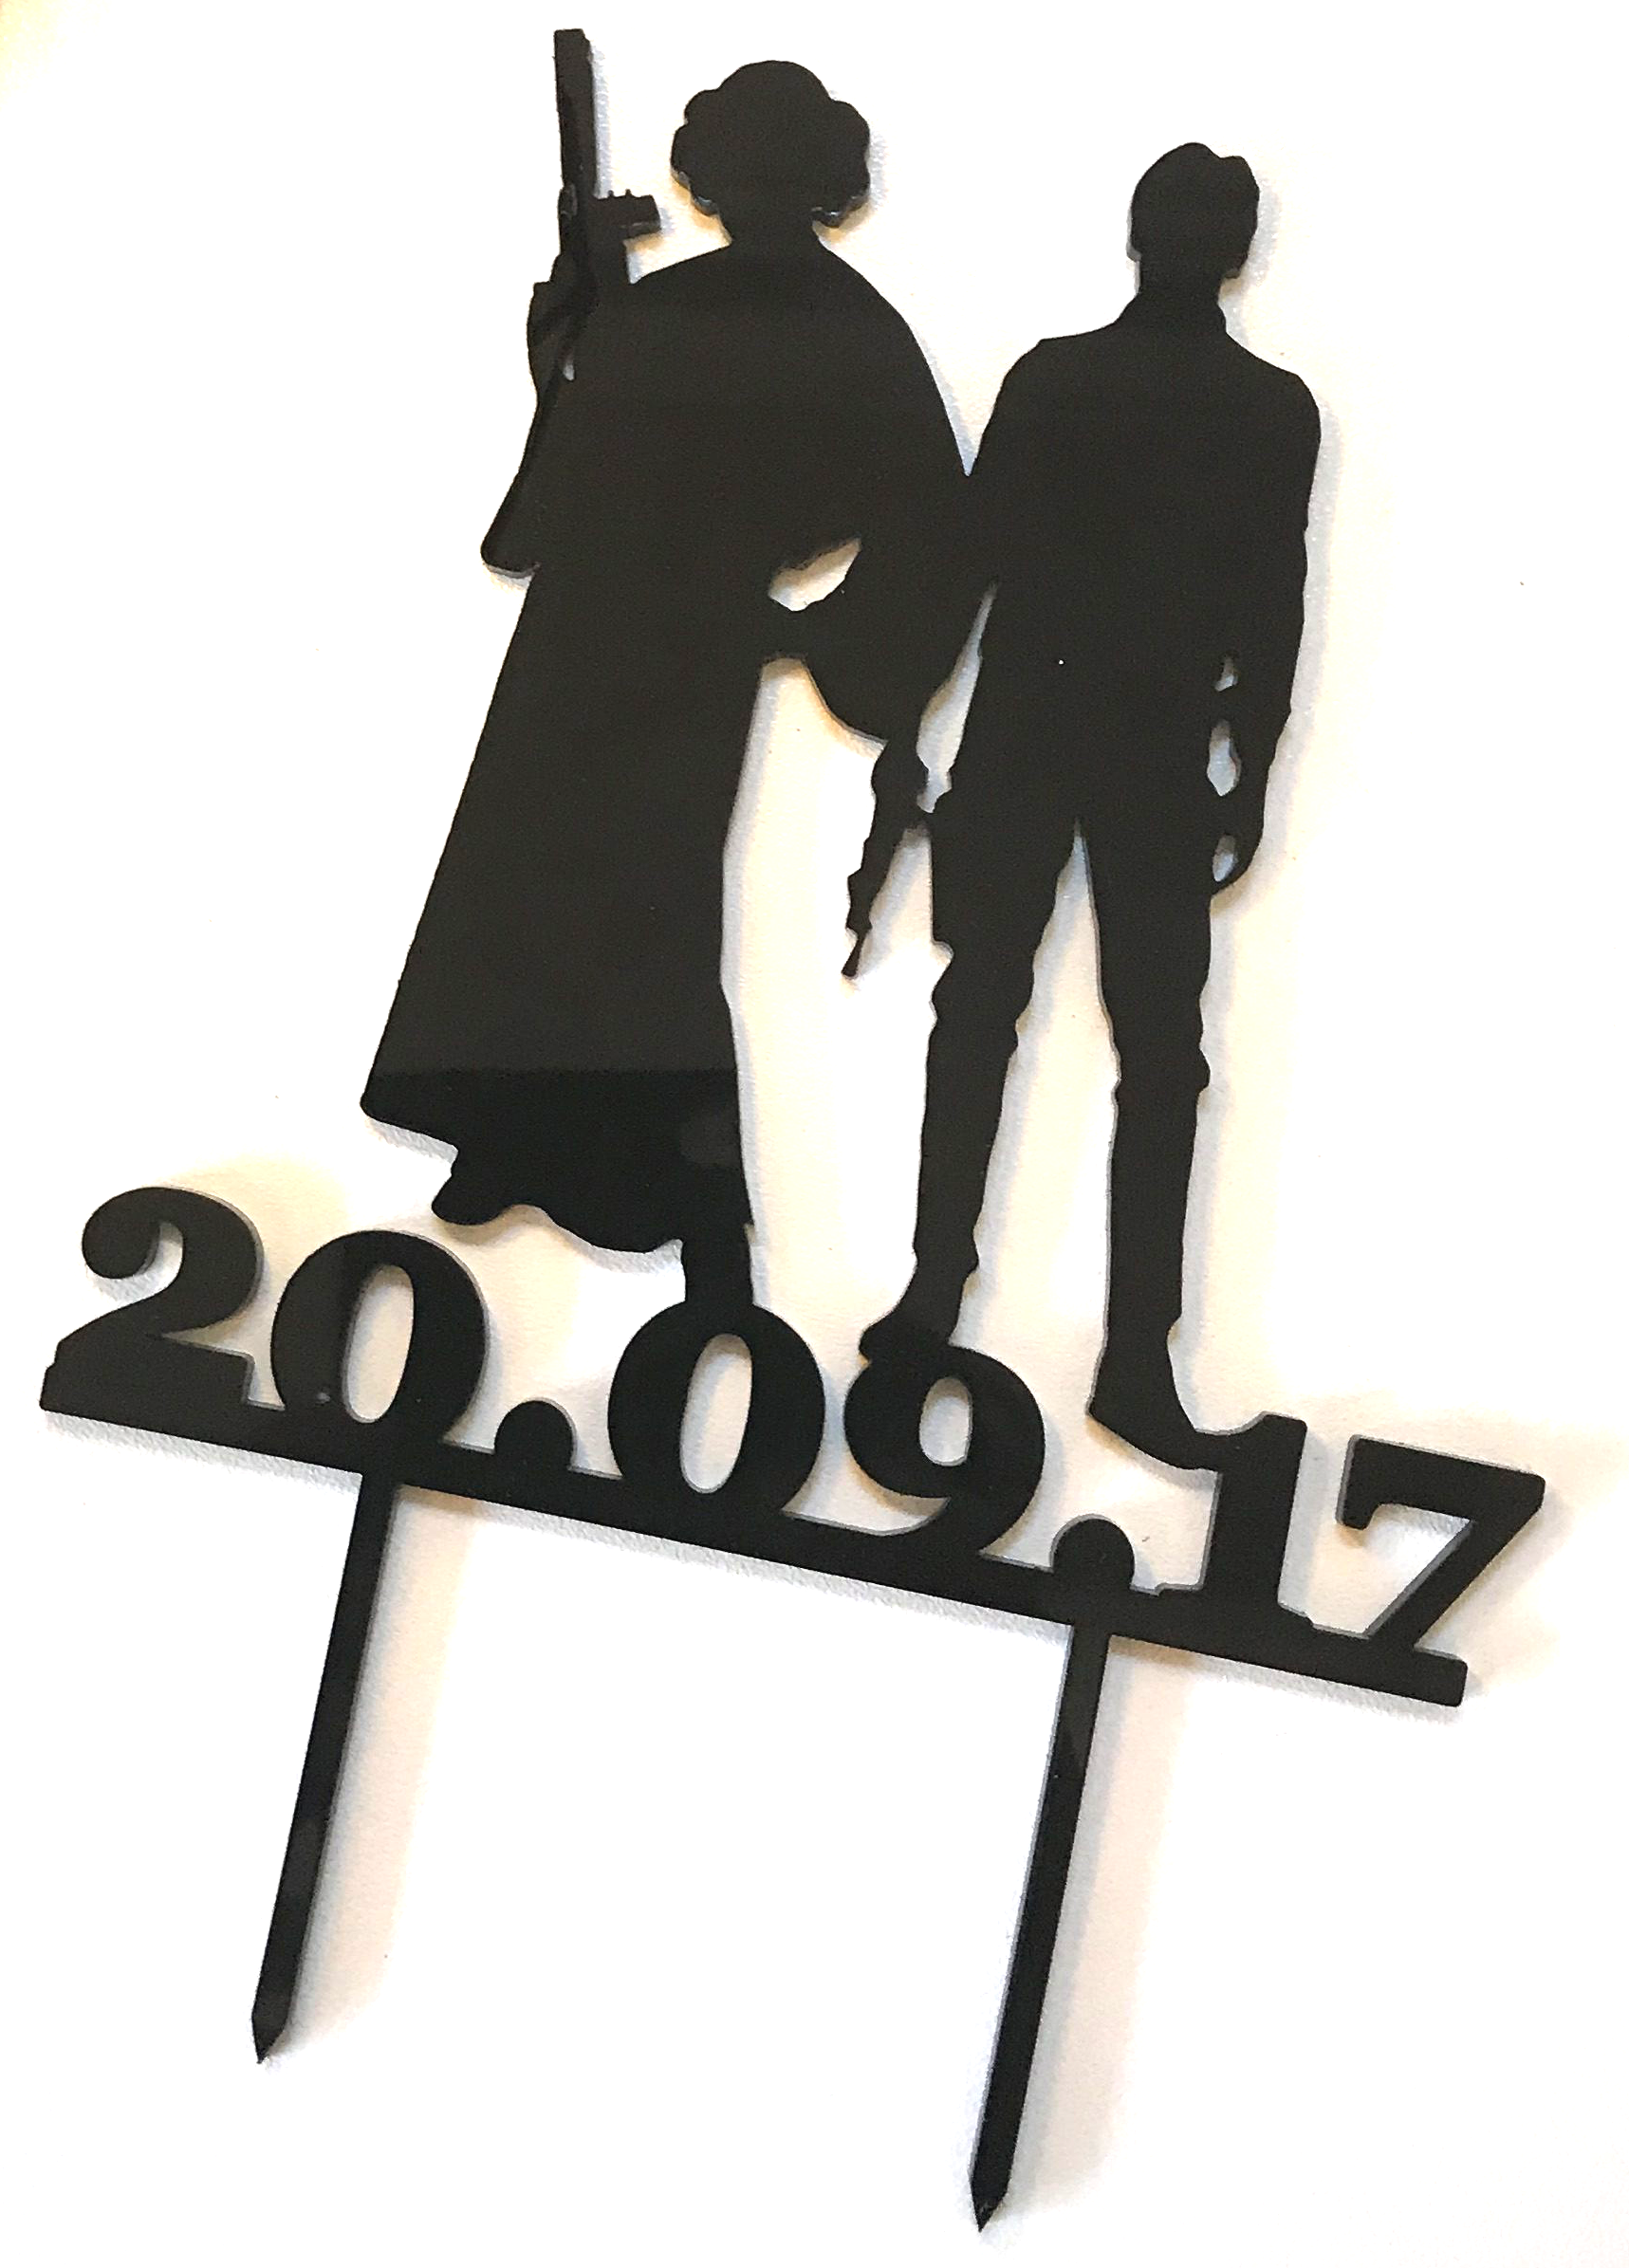 Wedding Cake Topper Star Wars Date Topper